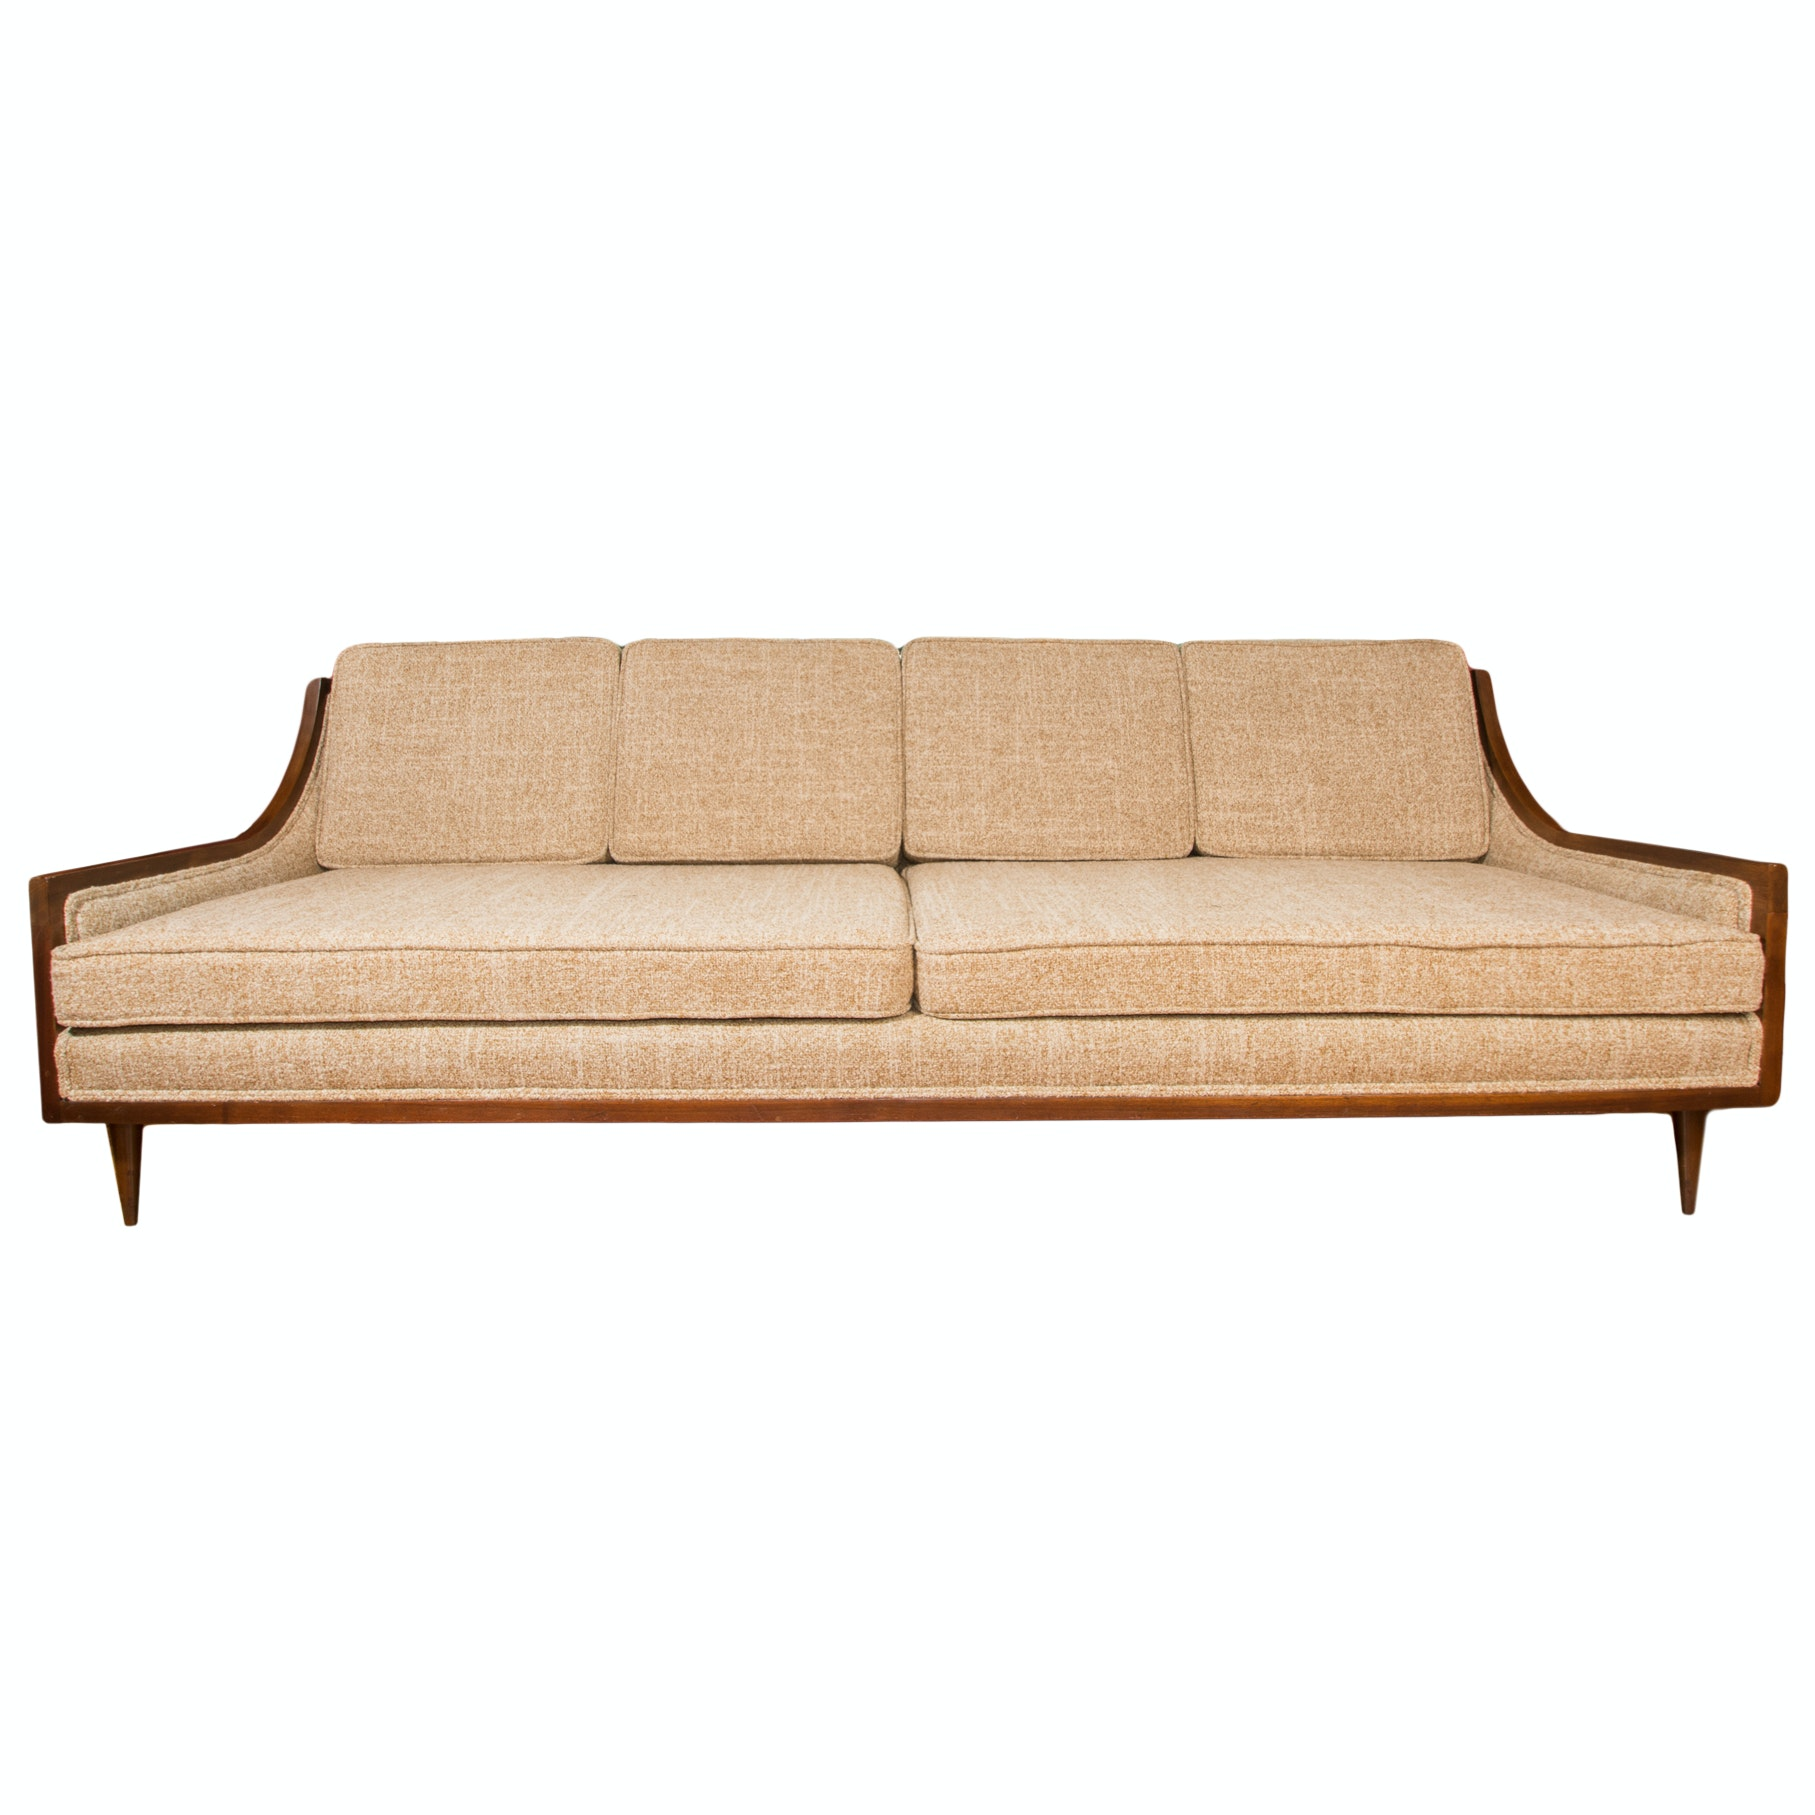 Mid-Century Danish Modern Sofa in the Style of Adrian Pearsall